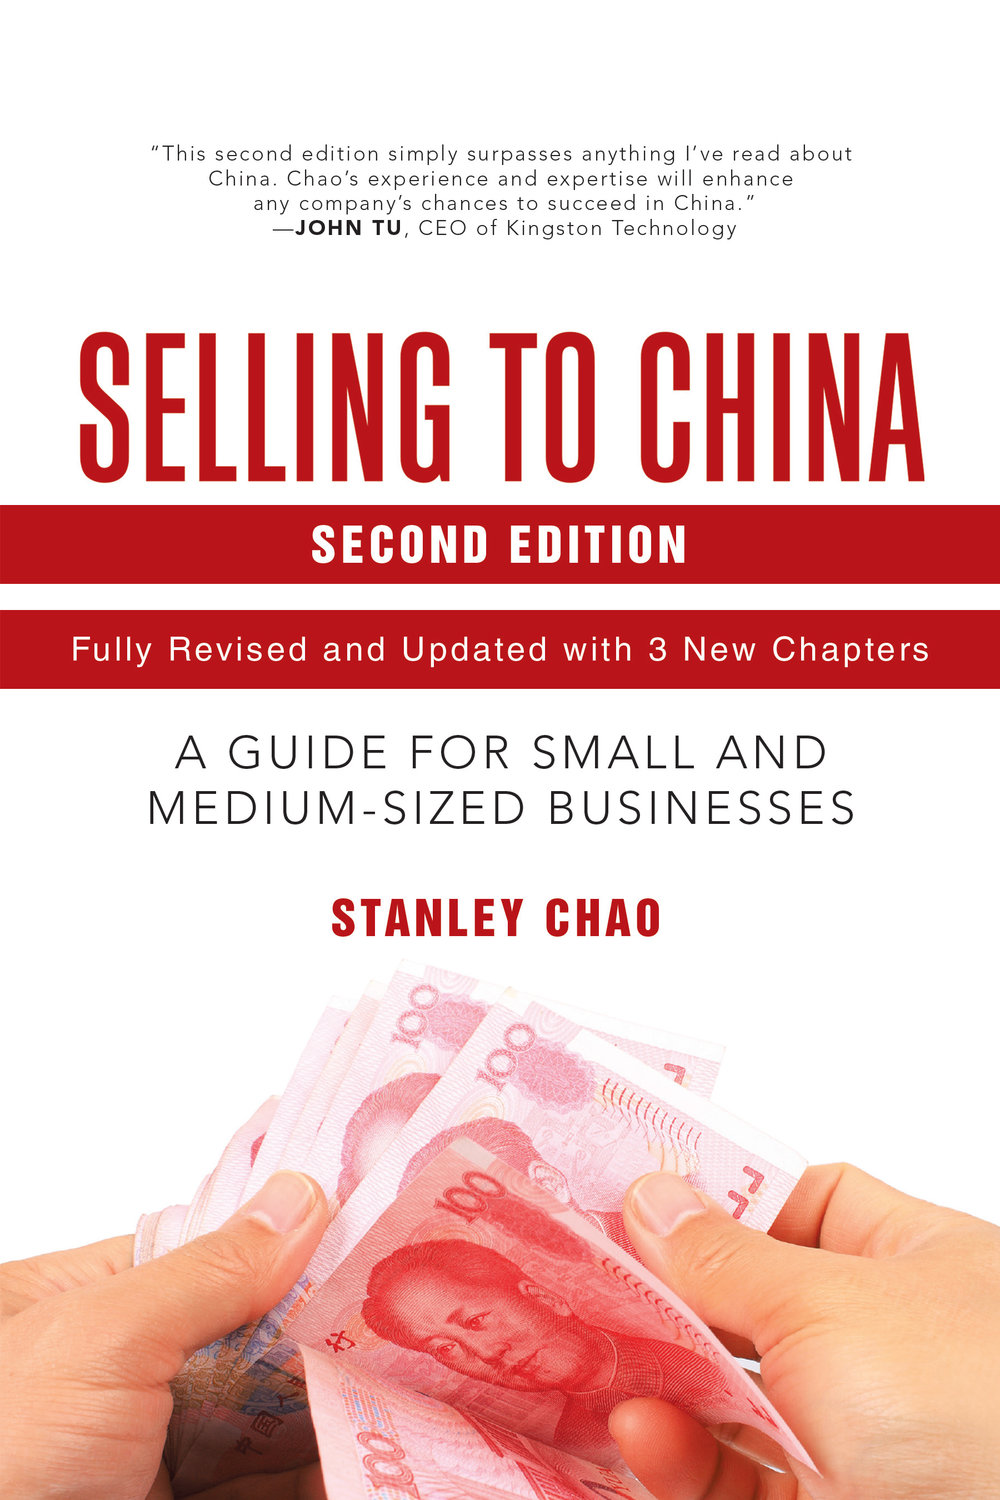 Selling to China Cover 2nd Edition  09202018.jpg